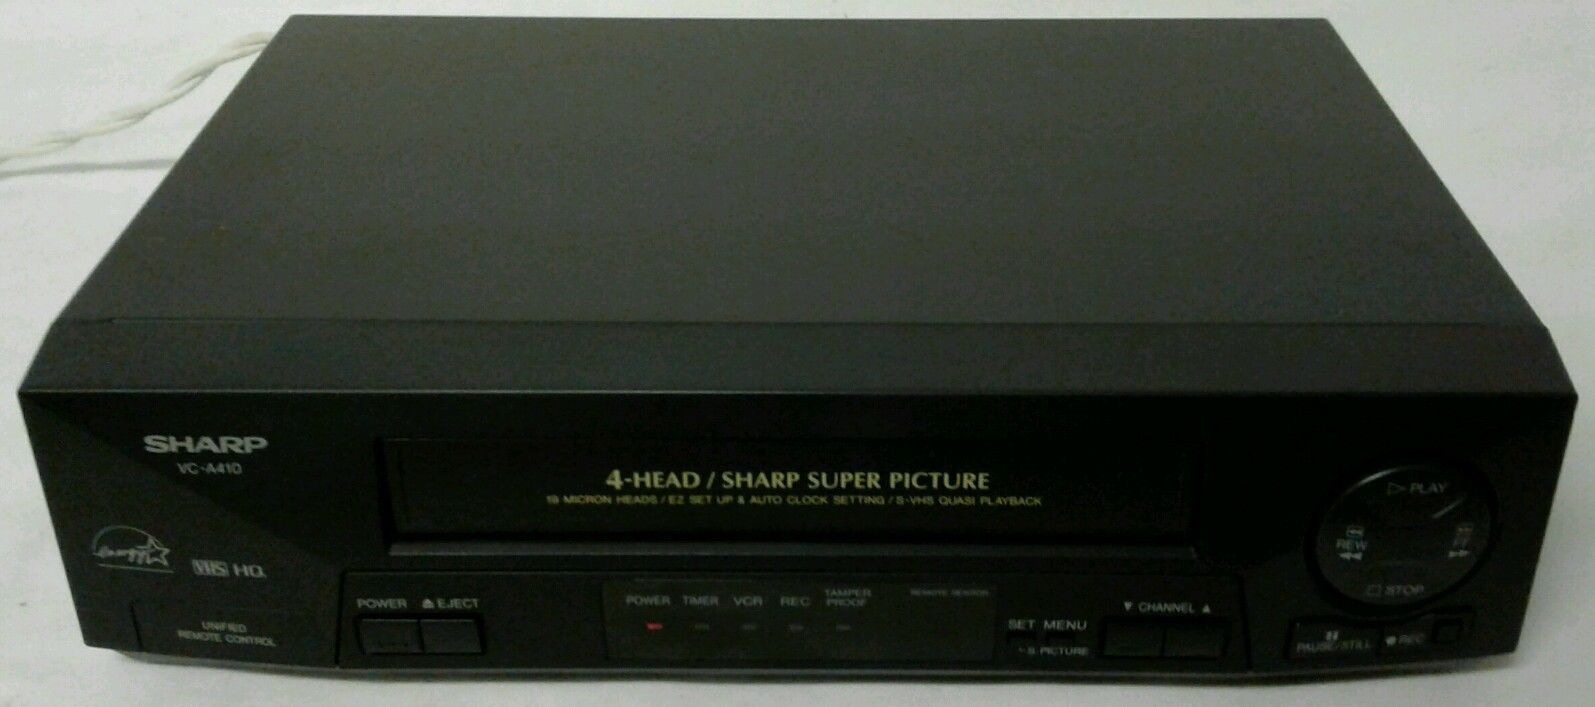 Sharp VC-A410 VHS VCR Video Cassette Recorder Player 4 Head S-VHS Quasi Playback